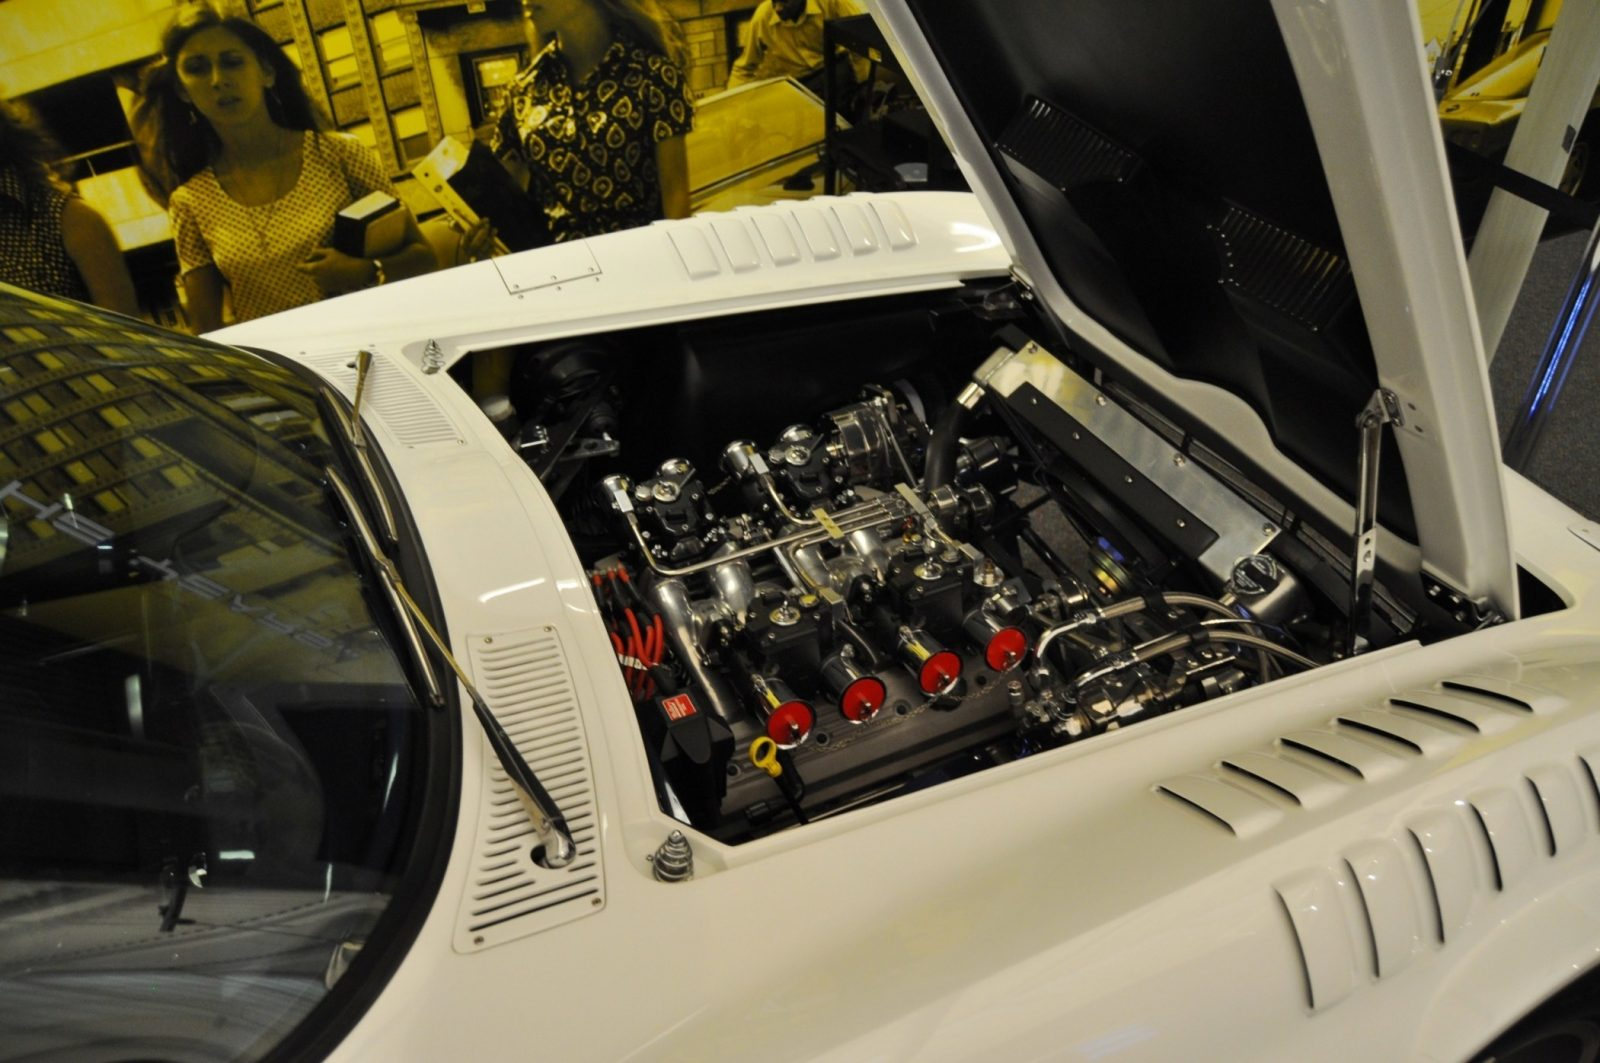 1963 Corvette GS Chaparral by Dick Coup at National Corvette Museum 7